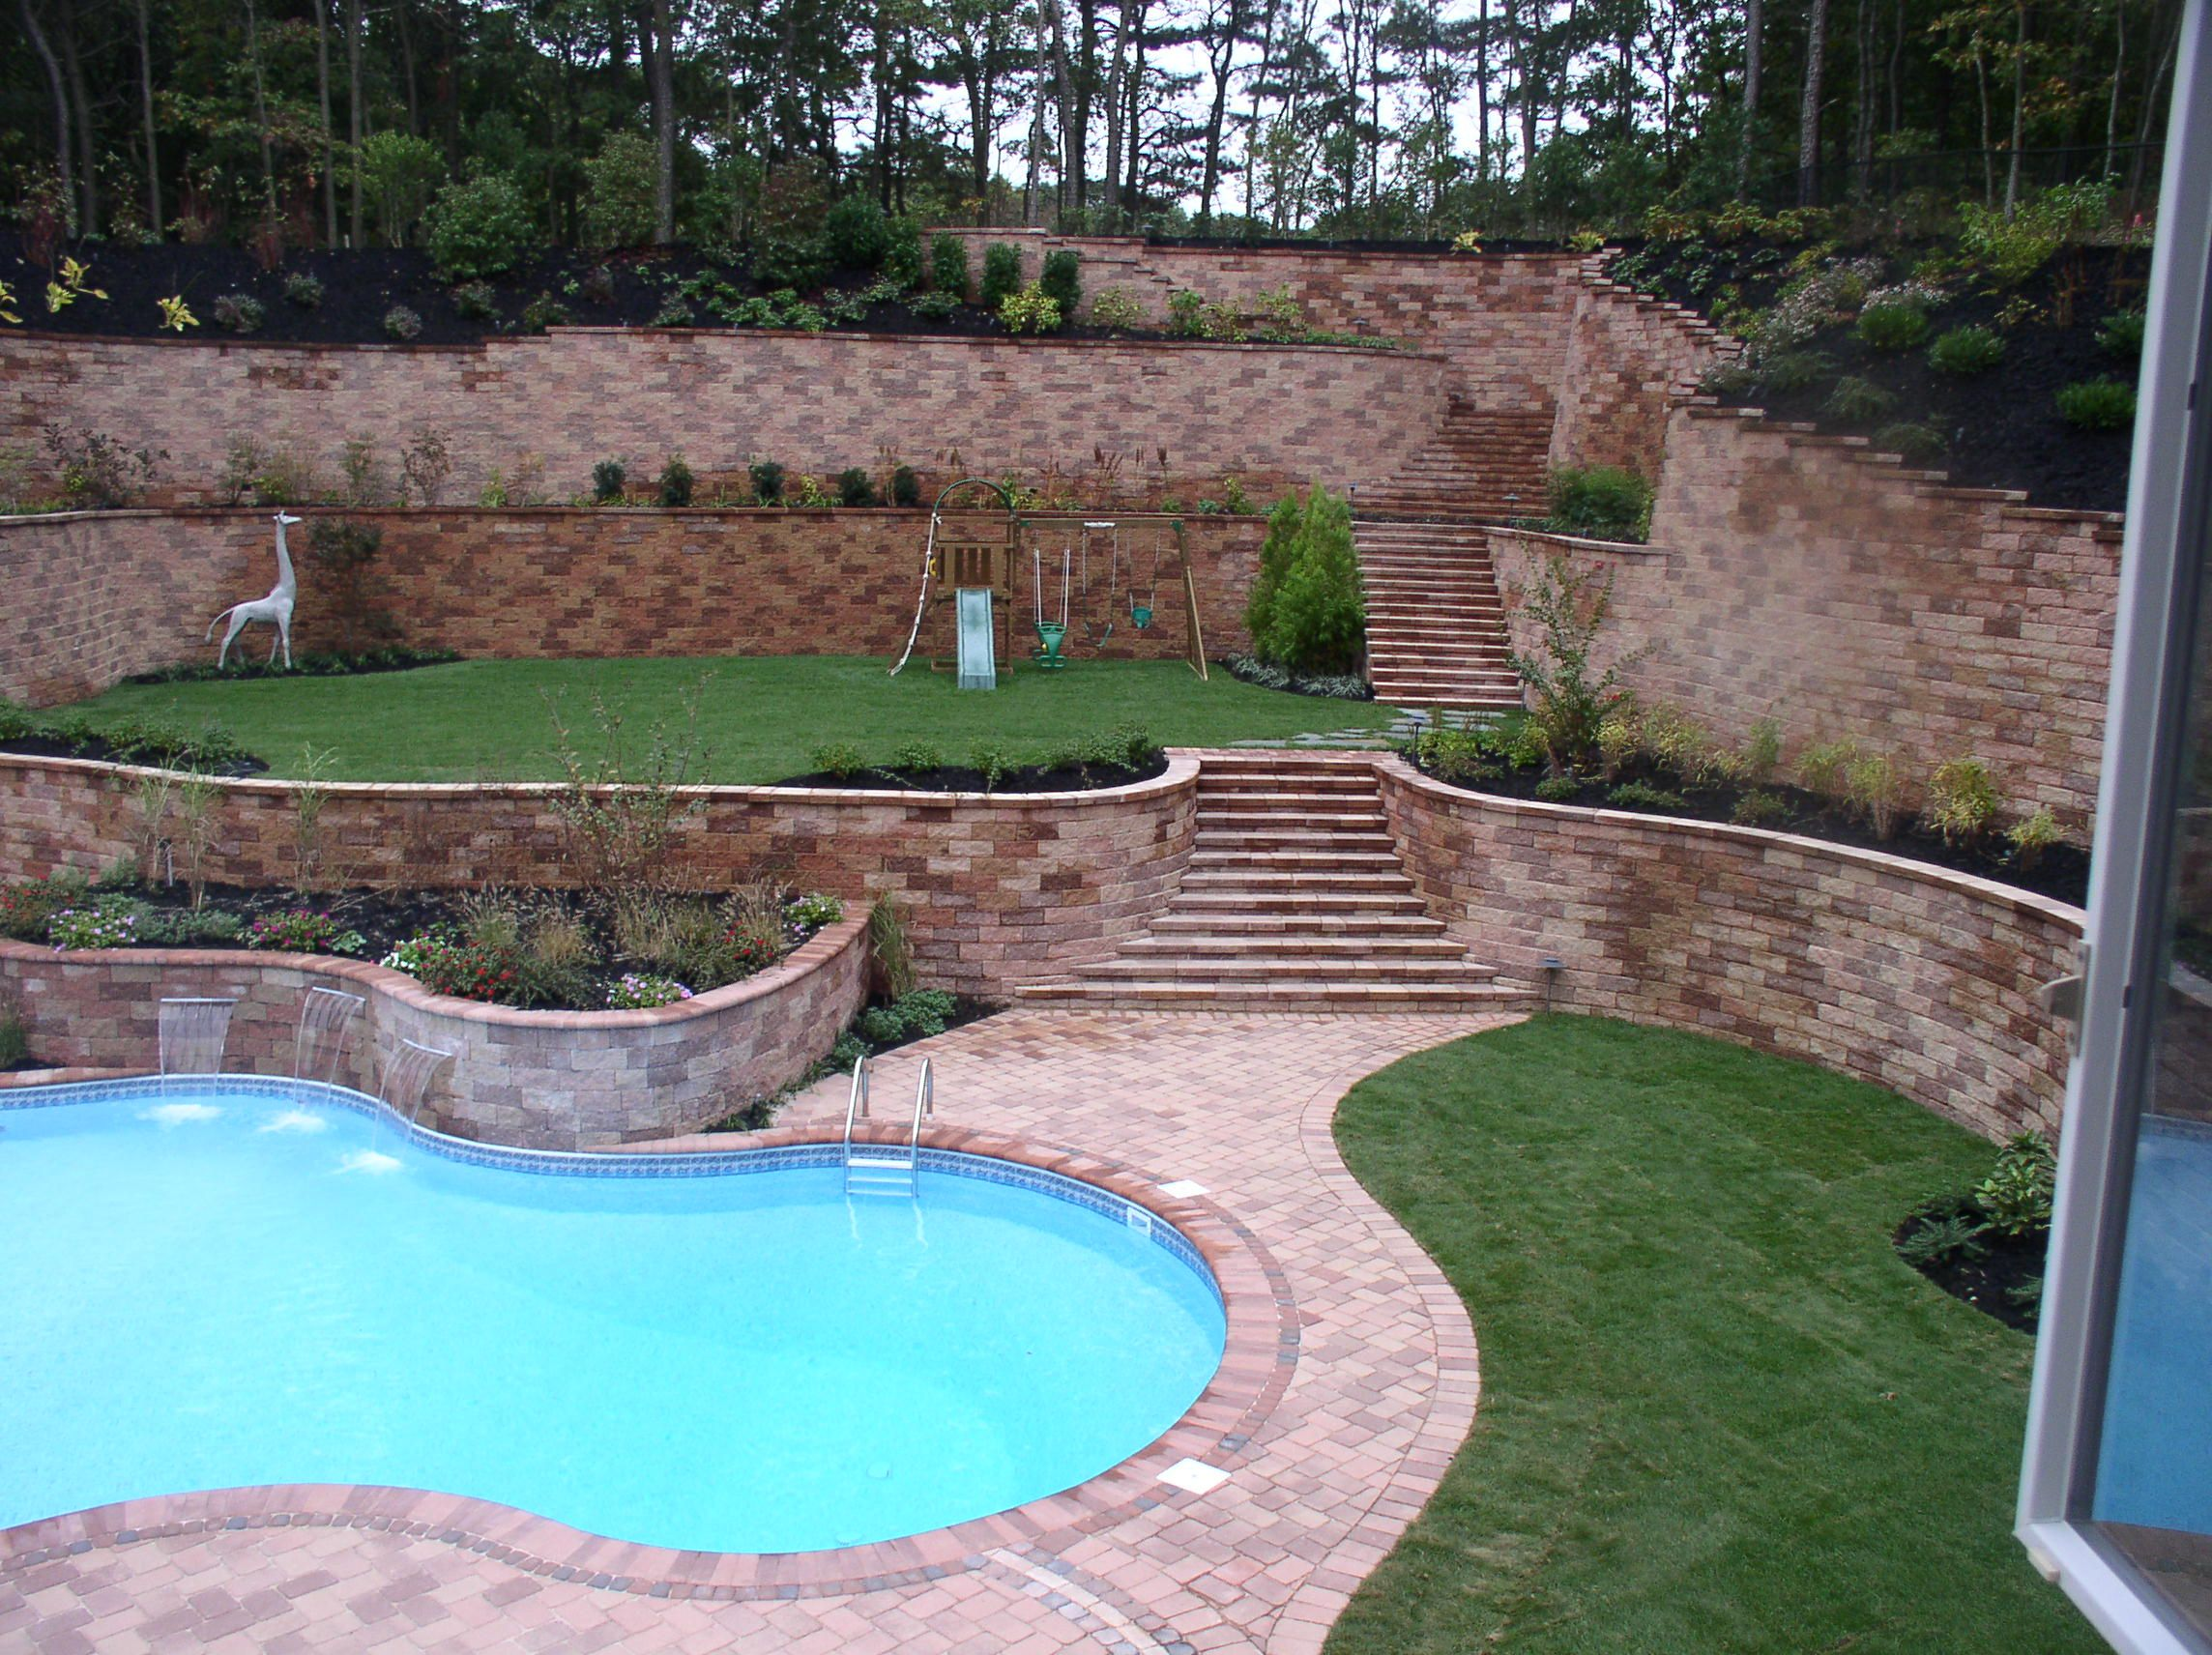 Large Back Yard Landscaping With Retaining Wall Custom Retaining Walls Garden Walls Seat Wall Backyard Landscaping Designs Sloped Backyard Pool Landscaping